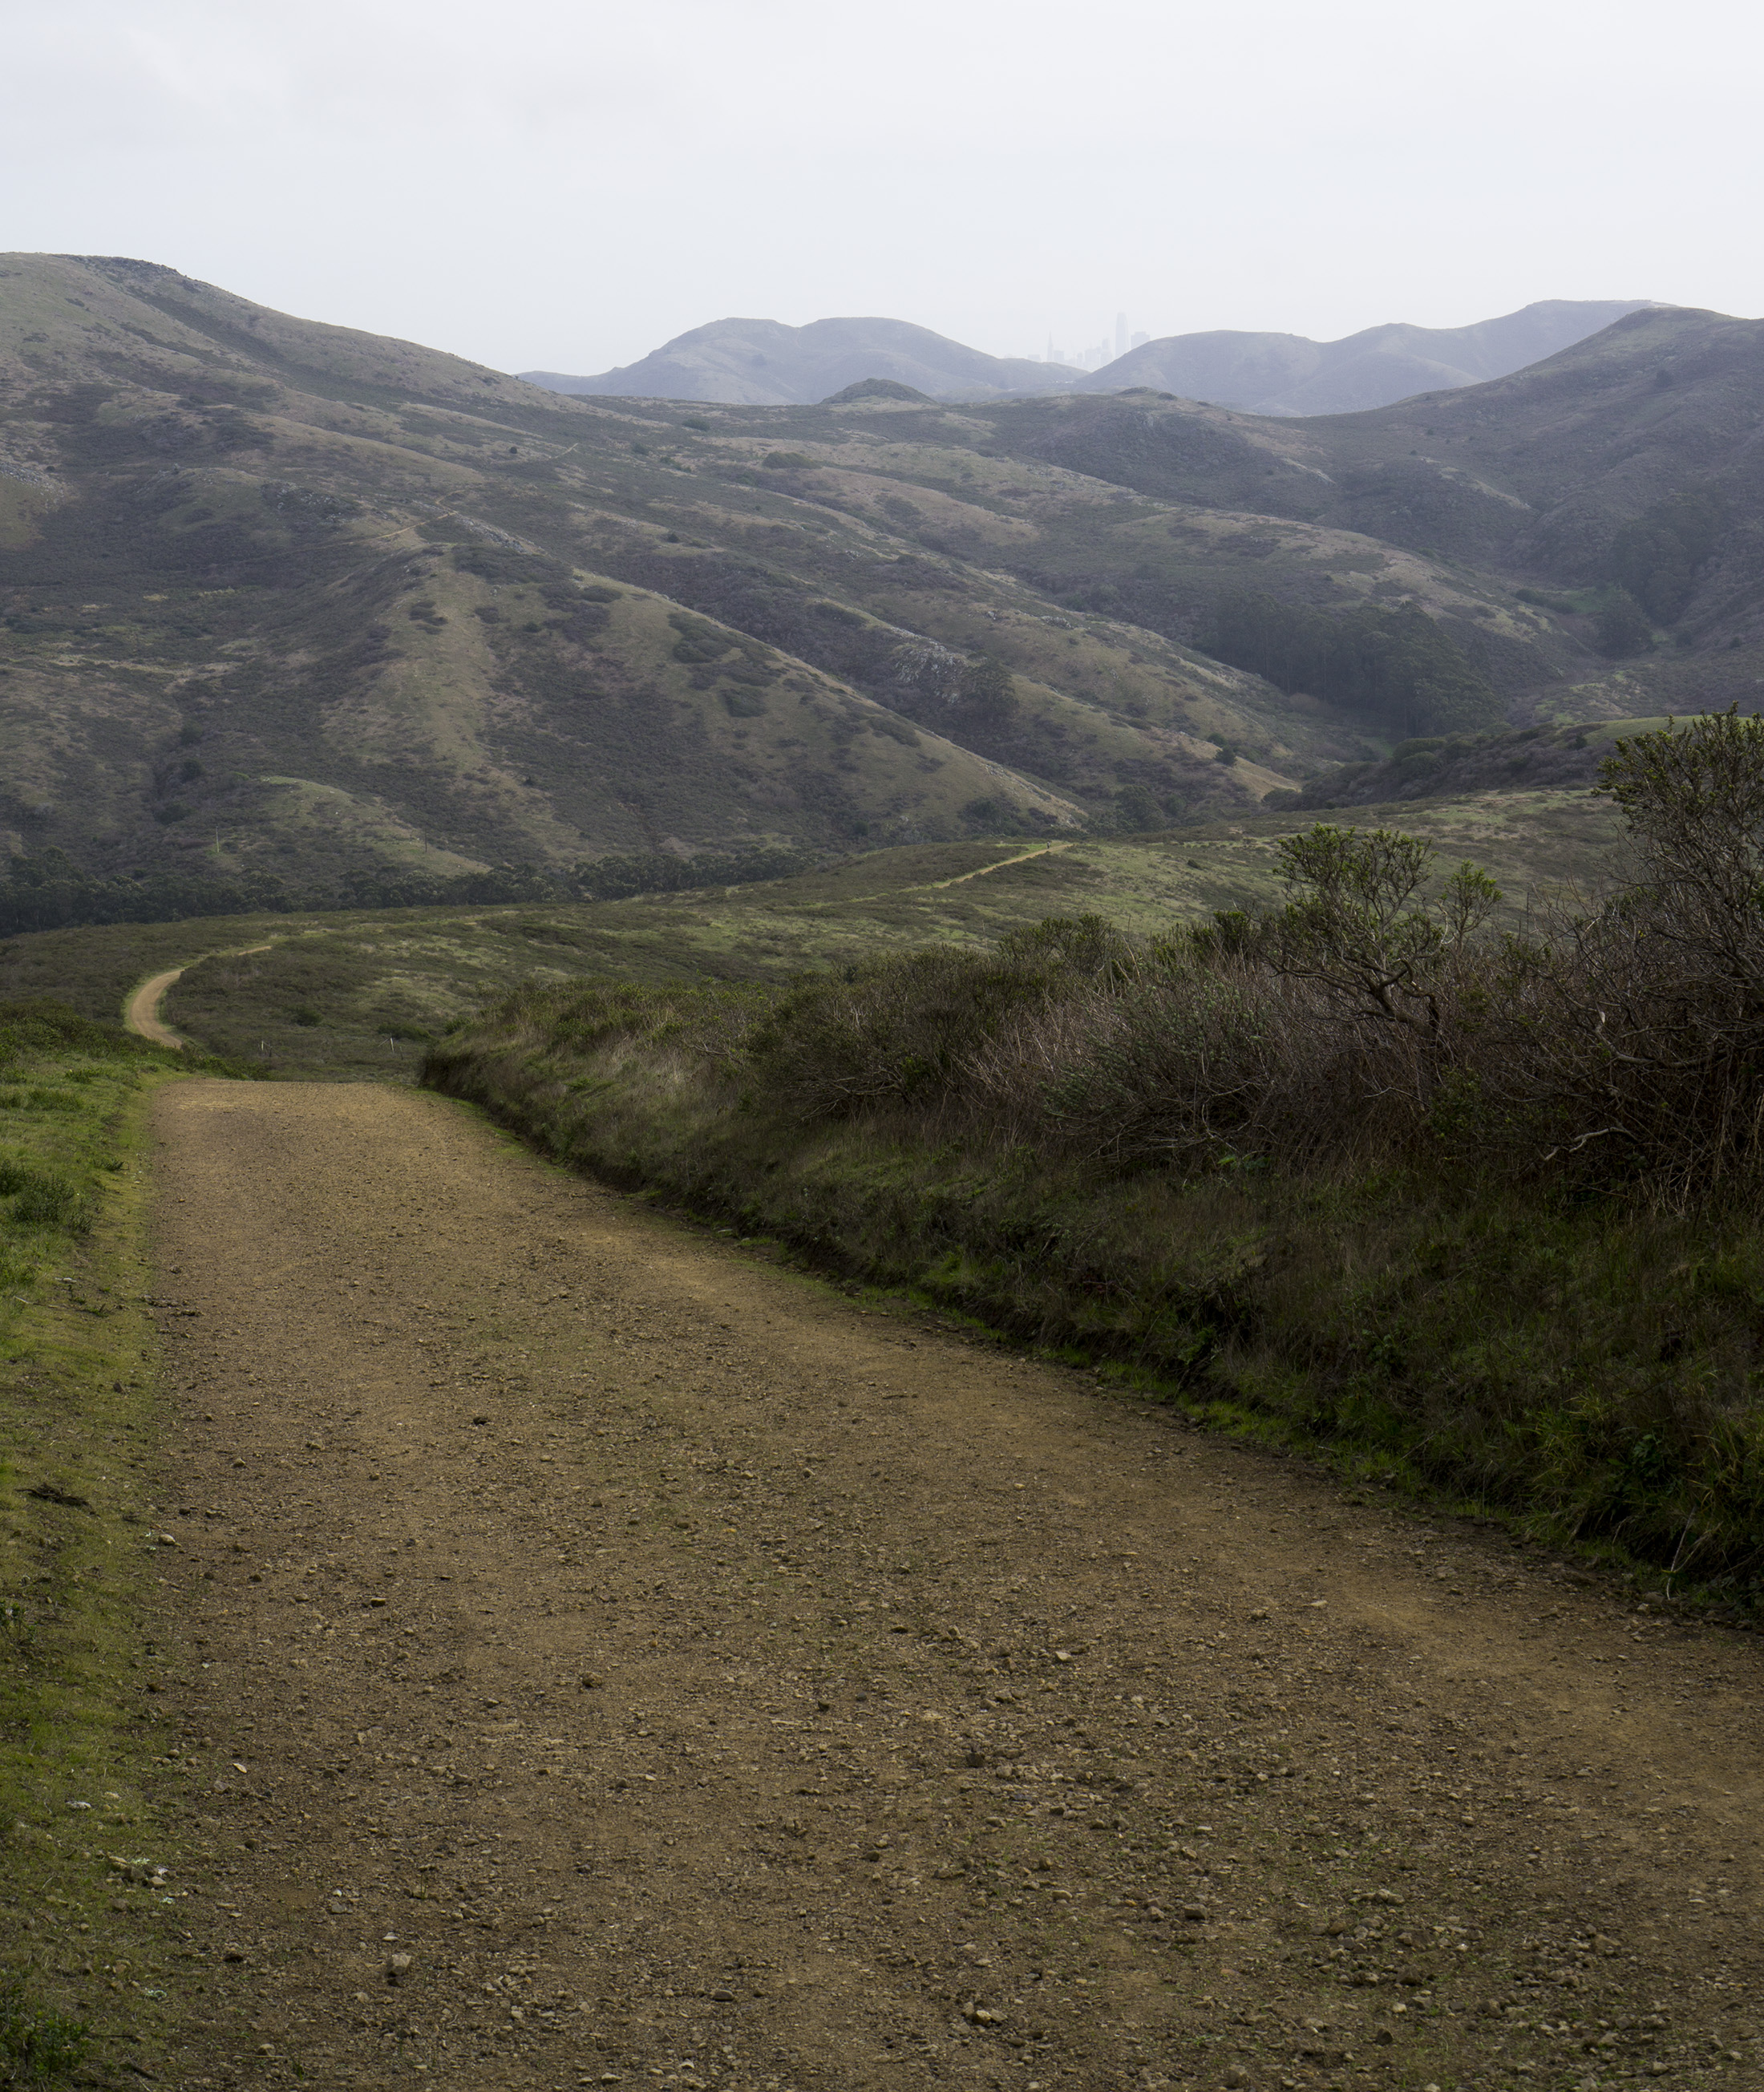 Tennessee Valley Trail, Marin Headlands, Golden Gate National Recreation Area / Darker than Green